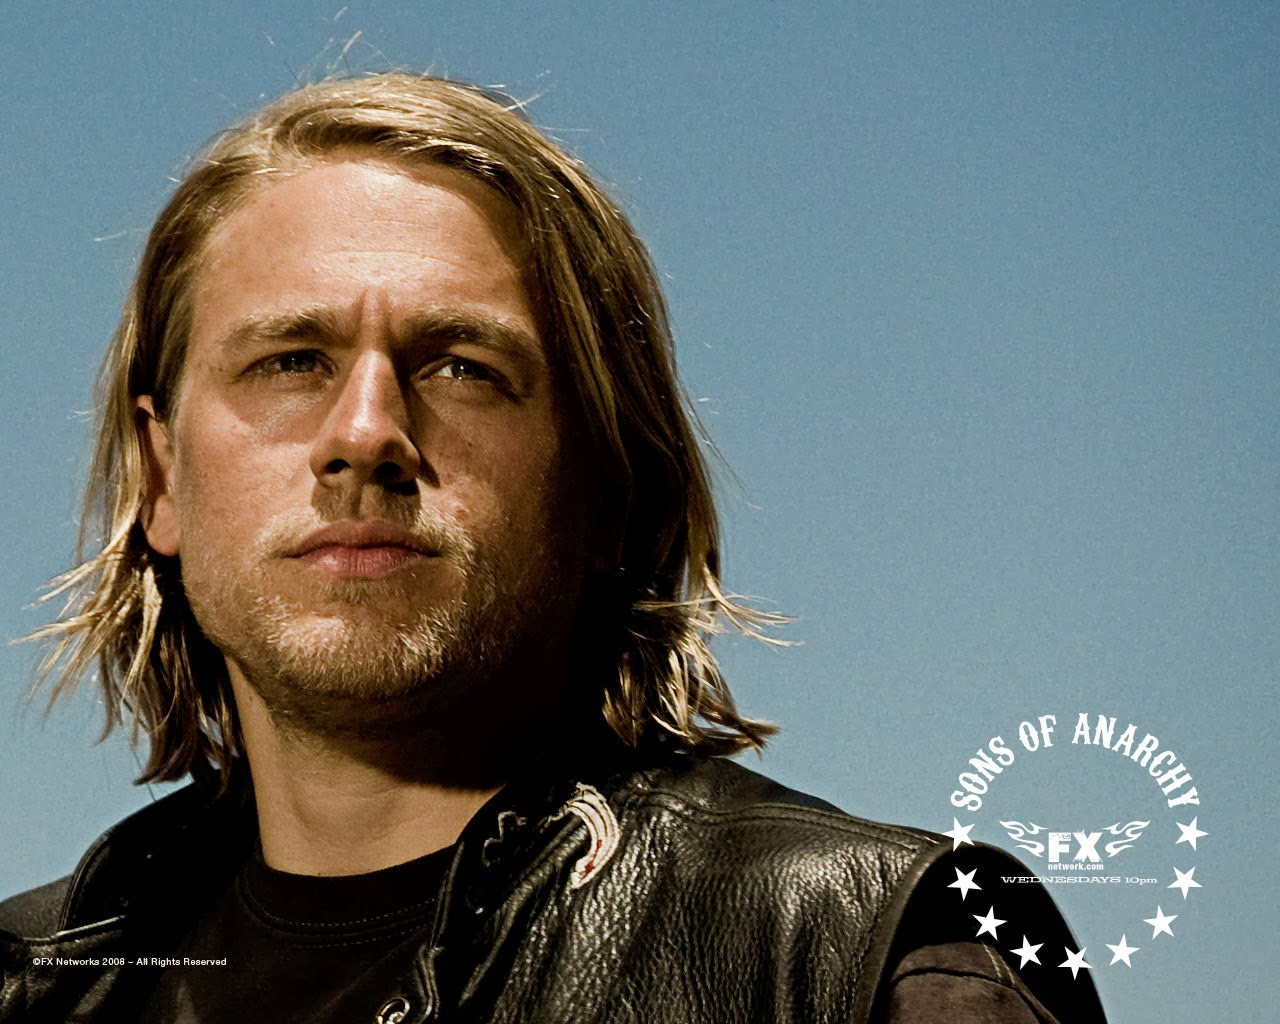 sons of anarchy Charlie Hunnam Wallpaper 1280x1024